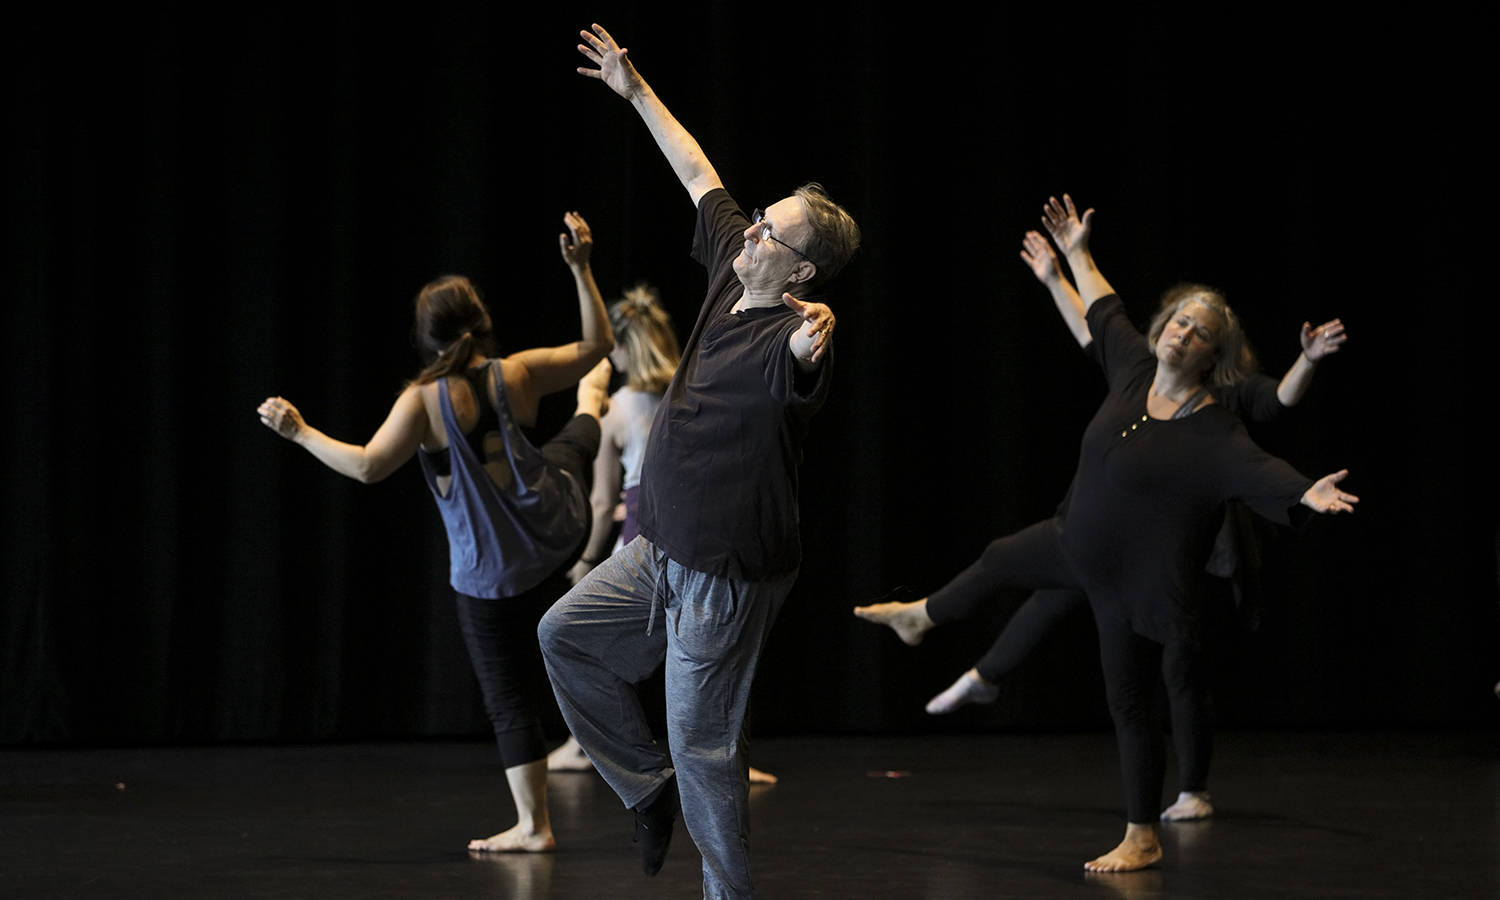 """Professor emeritus of the University of New Mexico and professor emeritus from the College at Brockport, SUNY Bill Evans performs with dance faculty from colleges across the world during the Somatic Dance Conference, """"Making Your Corner of the World a Better Place: Somatics, Science, Pedagogy and Performance"""" in Deming Theatre. The conference, organized by Professor of Dance Cynthia Williams and Evans, brought more than 75 keynote presenters and performers to the Gearan Center for the Performing Arts."""